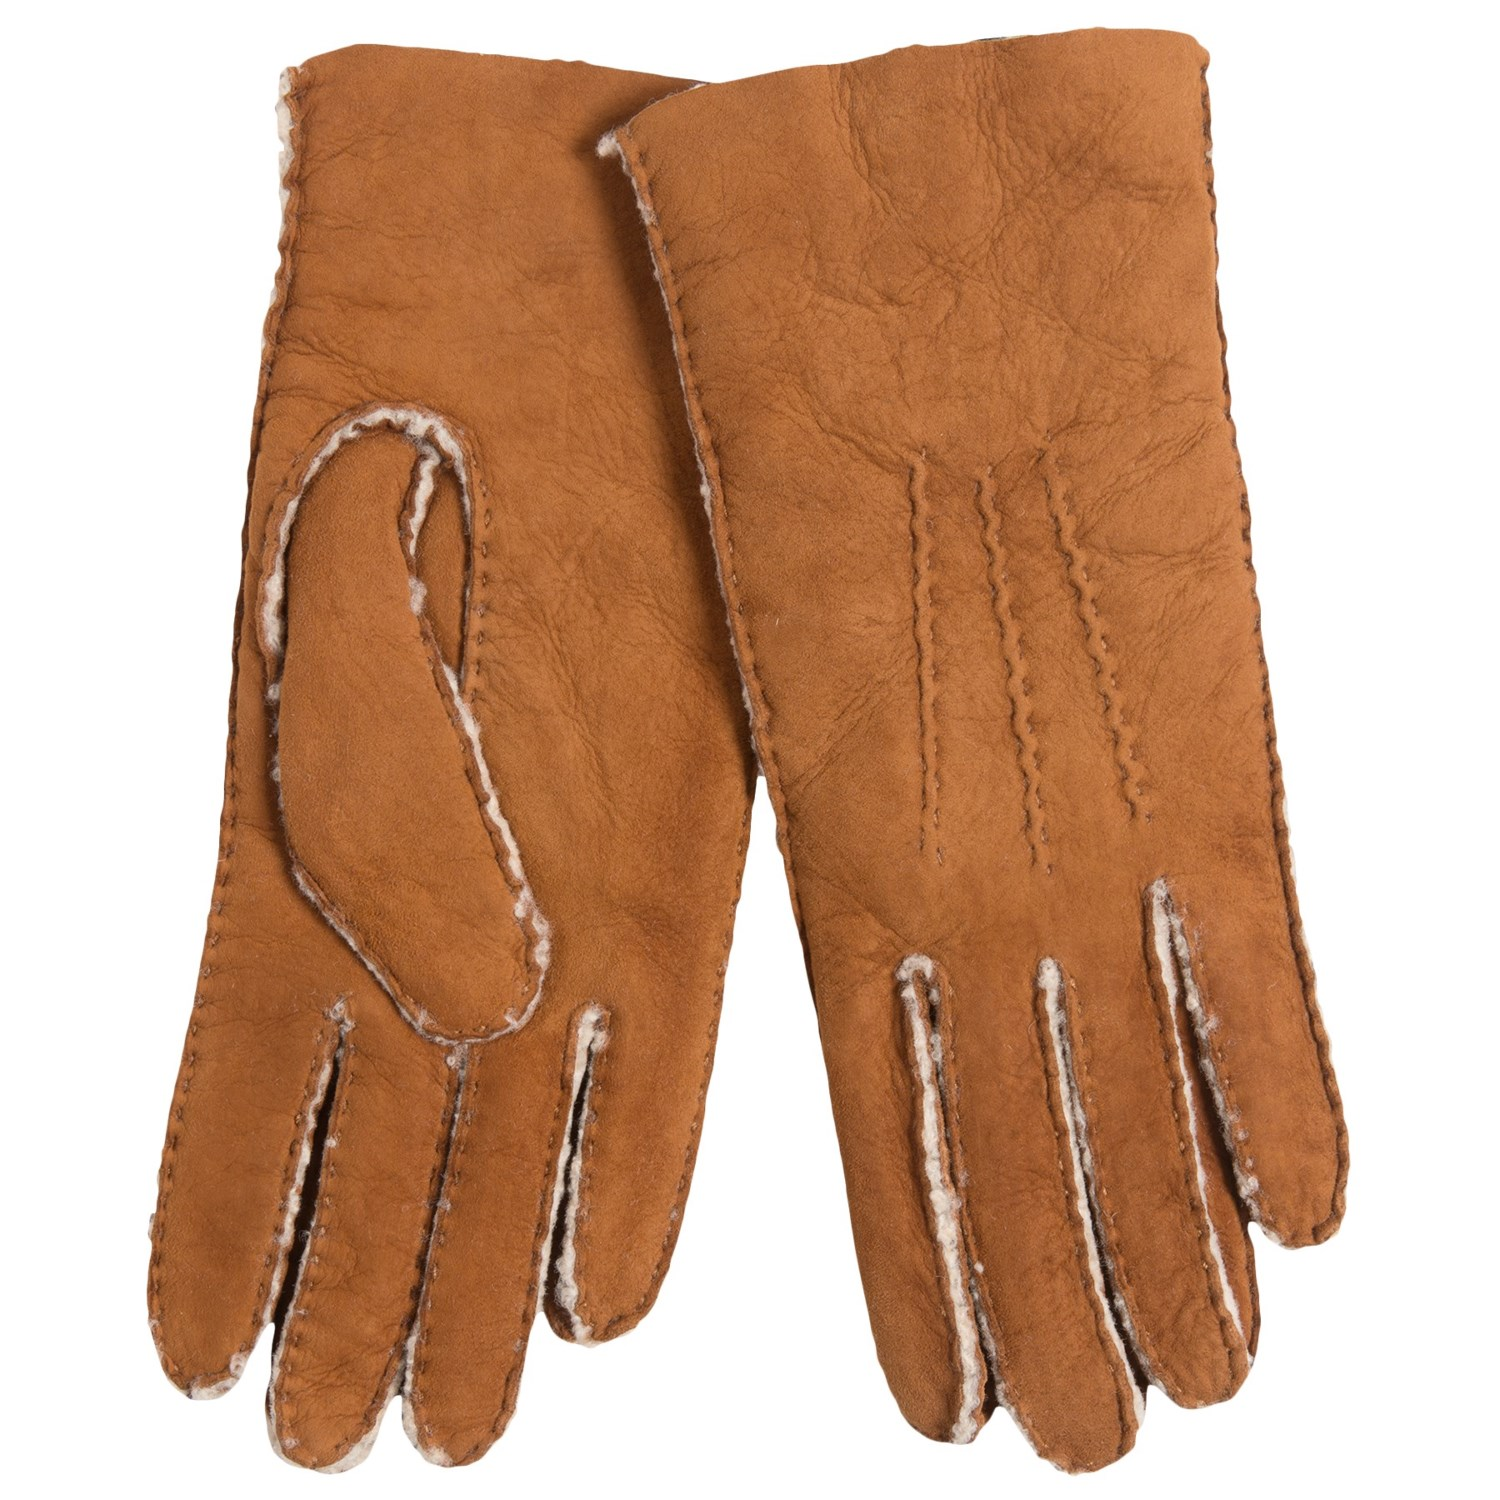 portolano-handsewn-curly-shearling-gloves-for-women-in-chestnut-p-153kw_03-1500-2